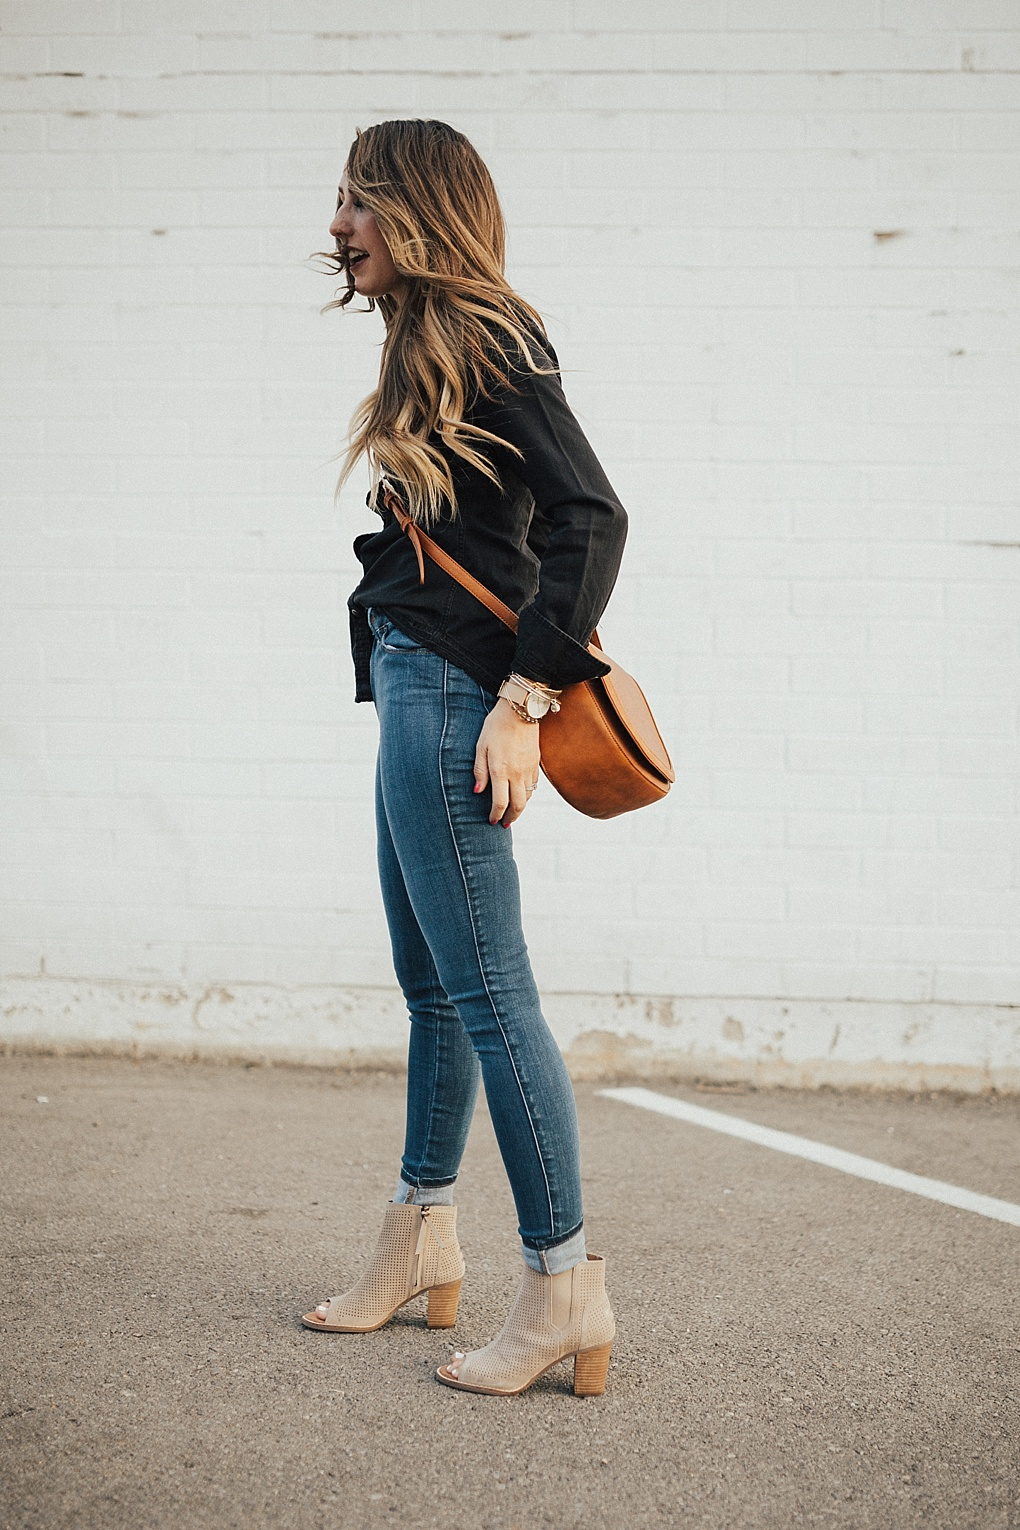 Black Button Up Shirt & Denim Combo by fashion blogger Dani Marie